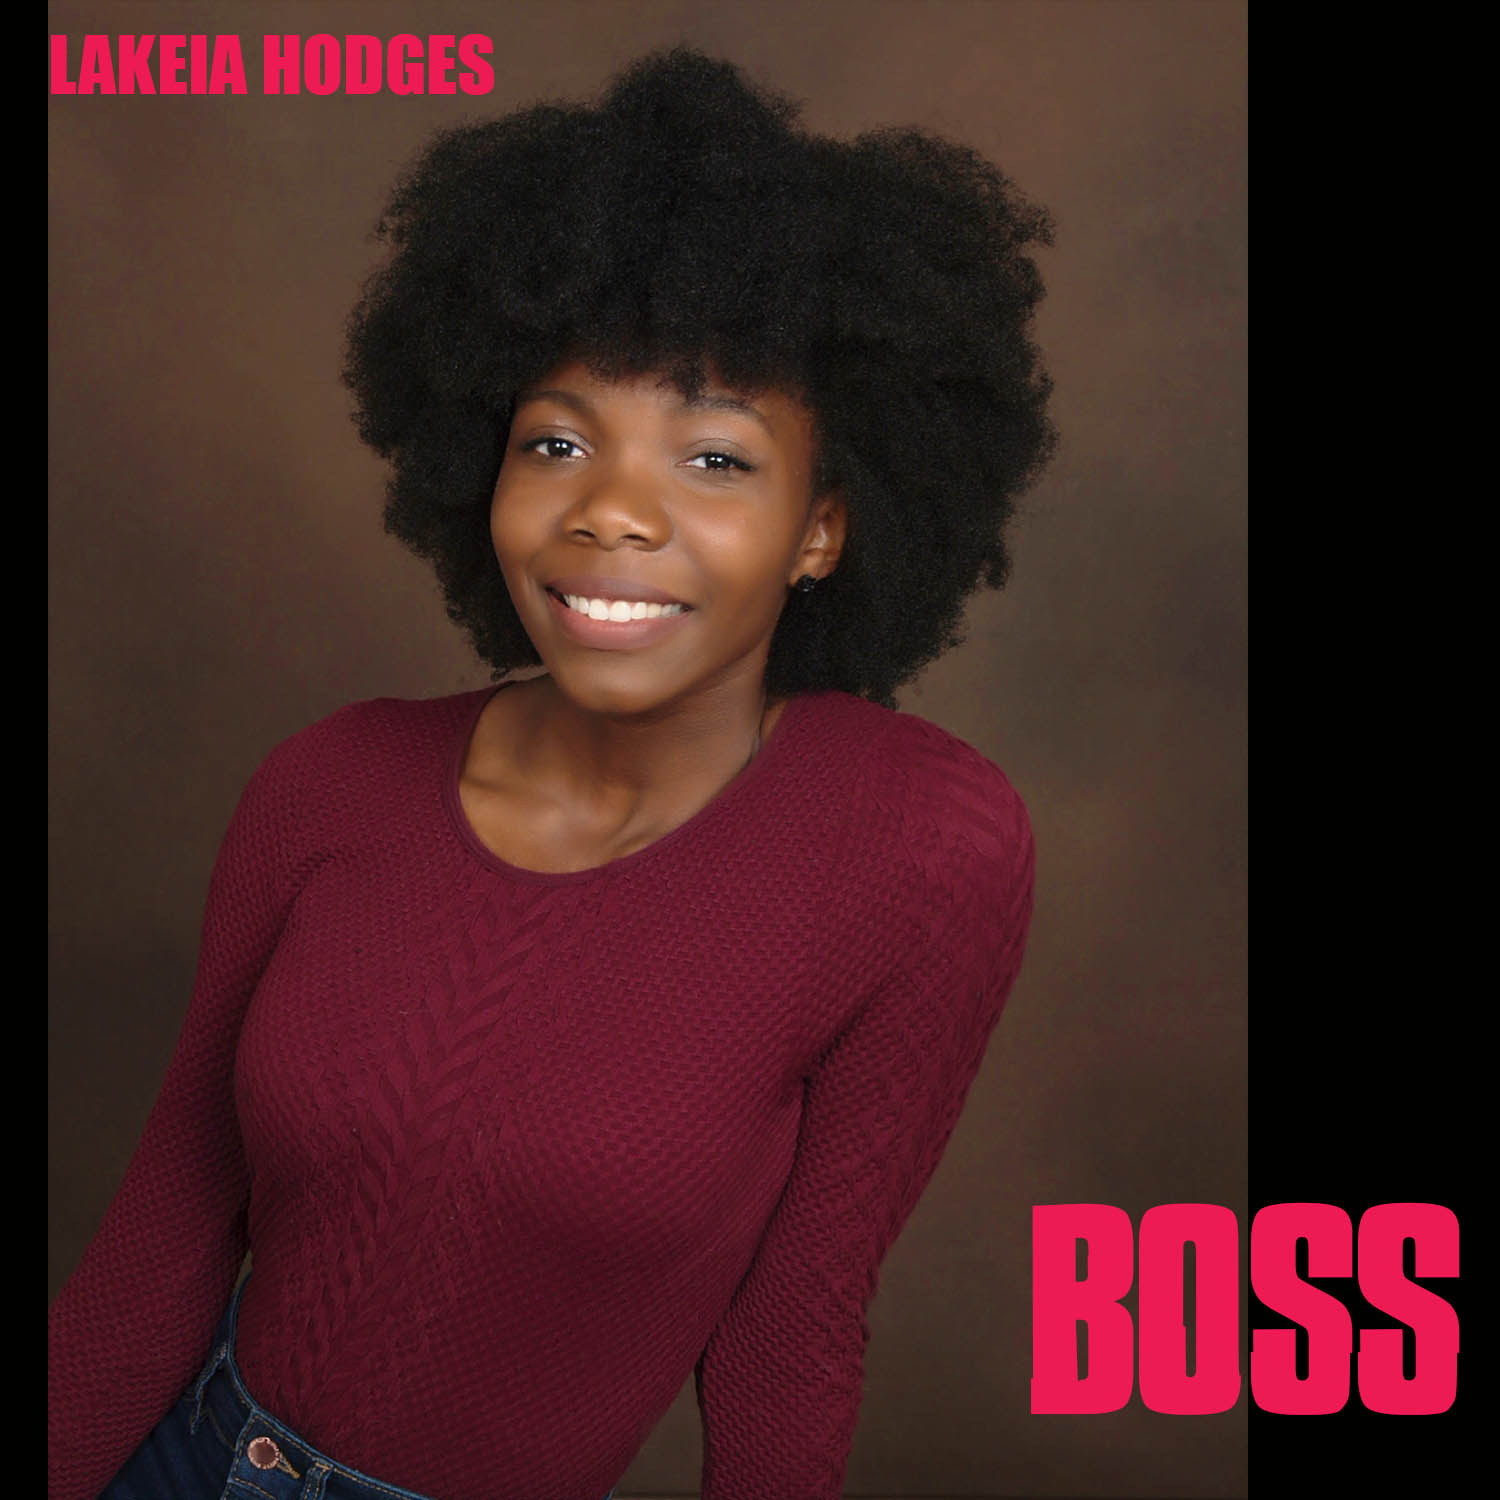 Lakeia Hodges stars as K Millennial / Blogger 1 - Lakeia Hodges is from Charleston, South Carolina. She received her B.A. in theatre. Her recent productions have been